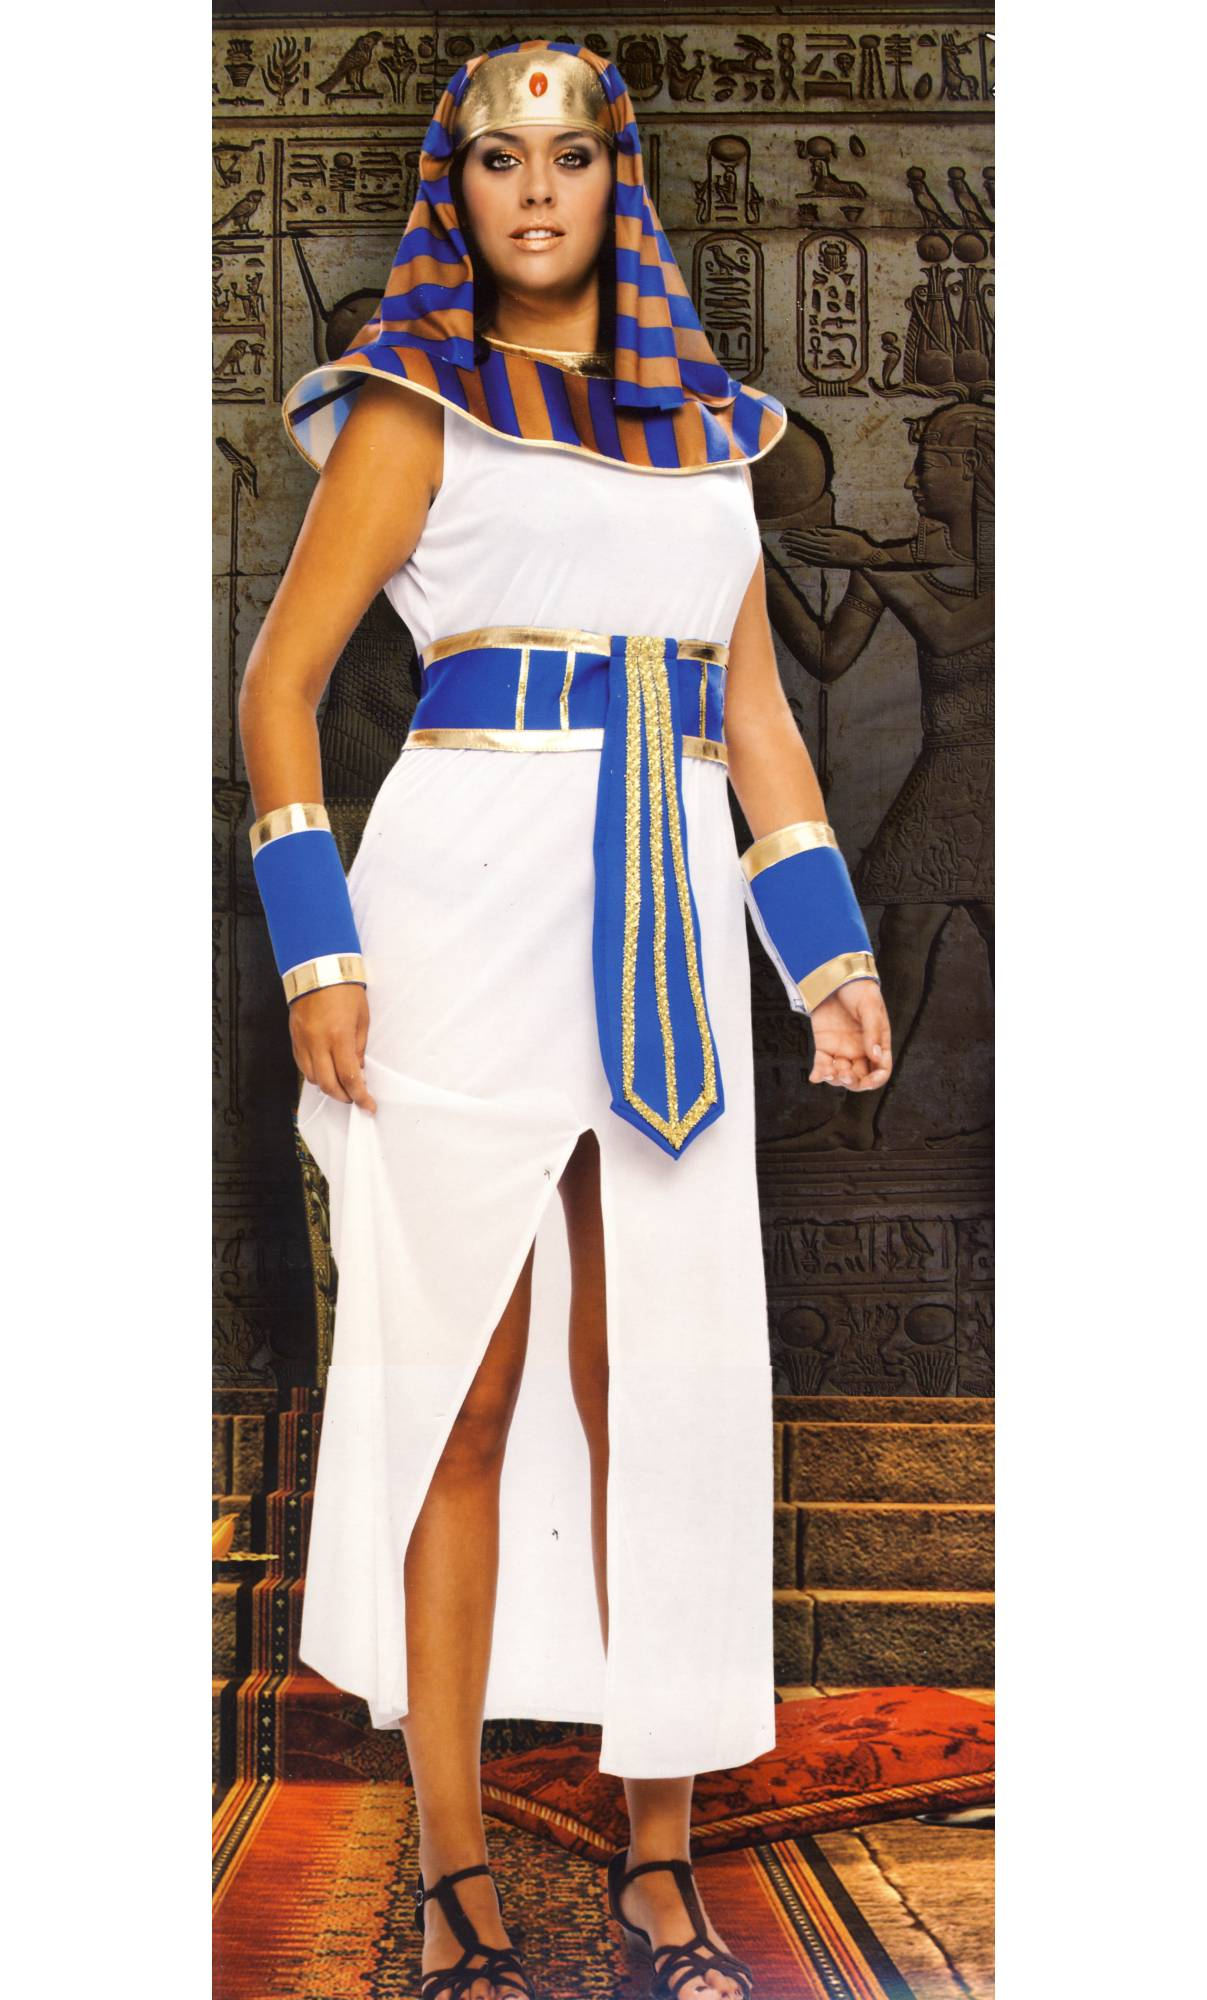 Robe-Egyptienne-Grande-taille